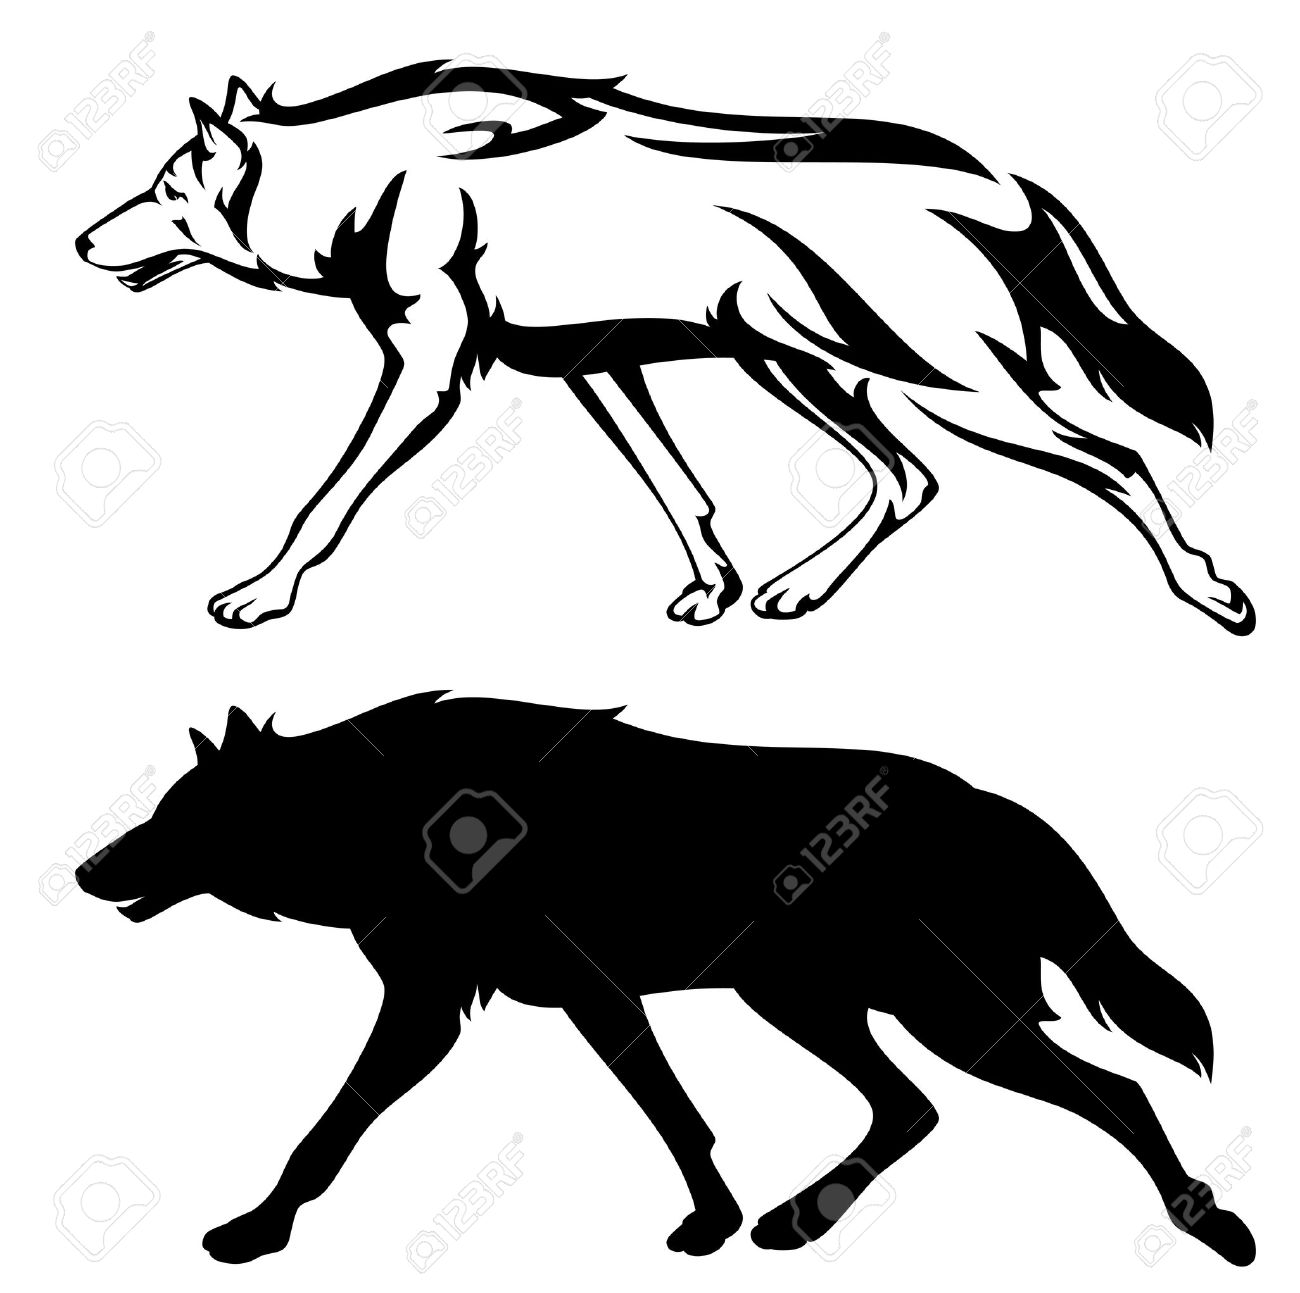 running wolf outline and silhouette - black and white vector design - 46101926